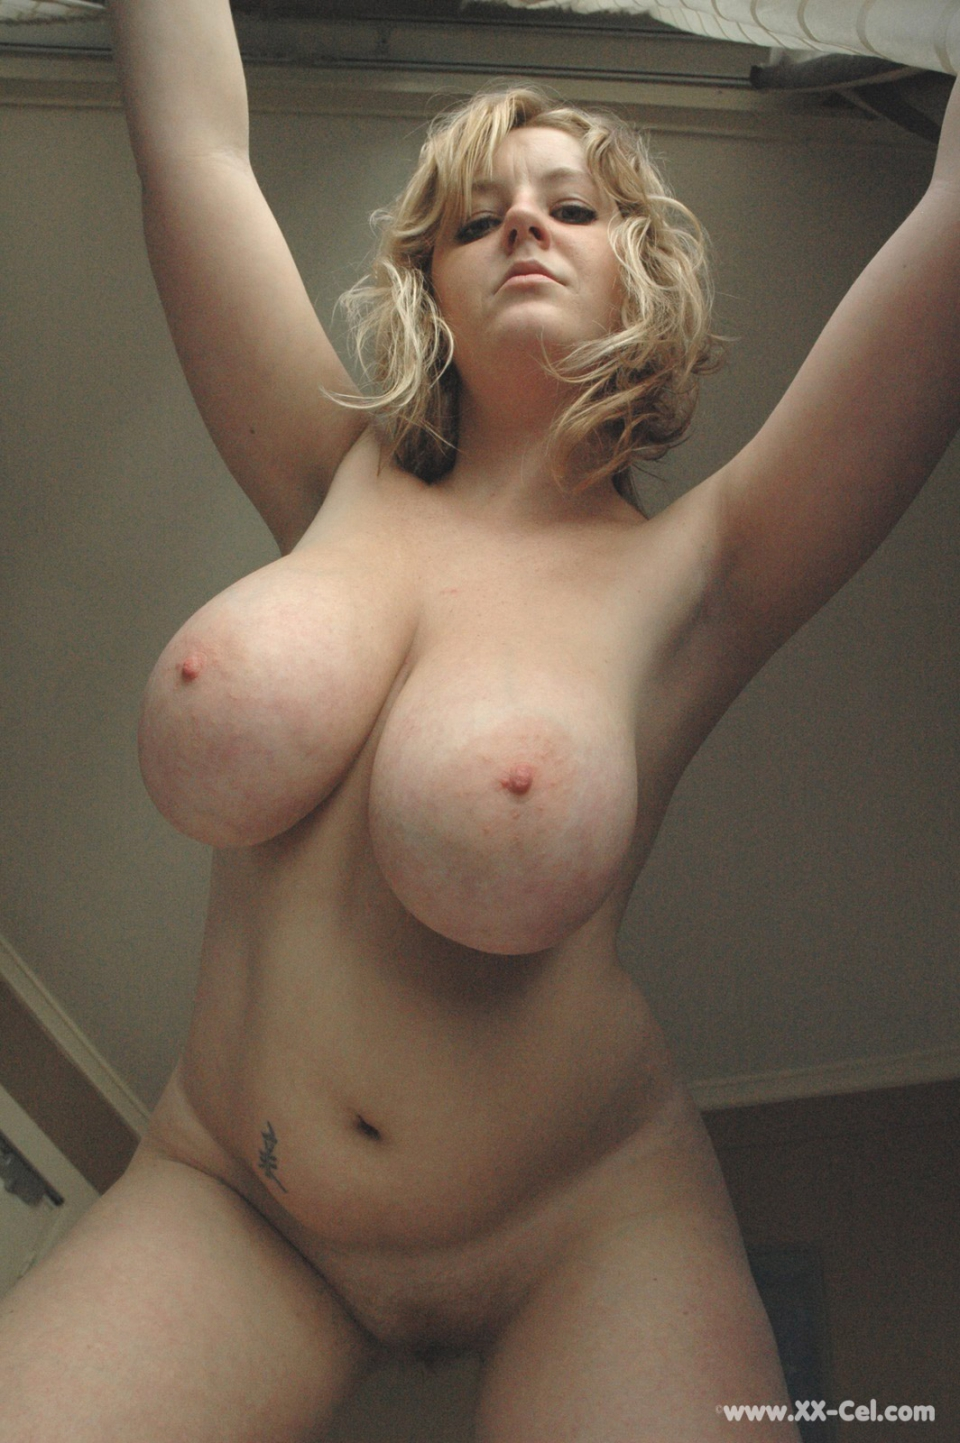 Busty blond big